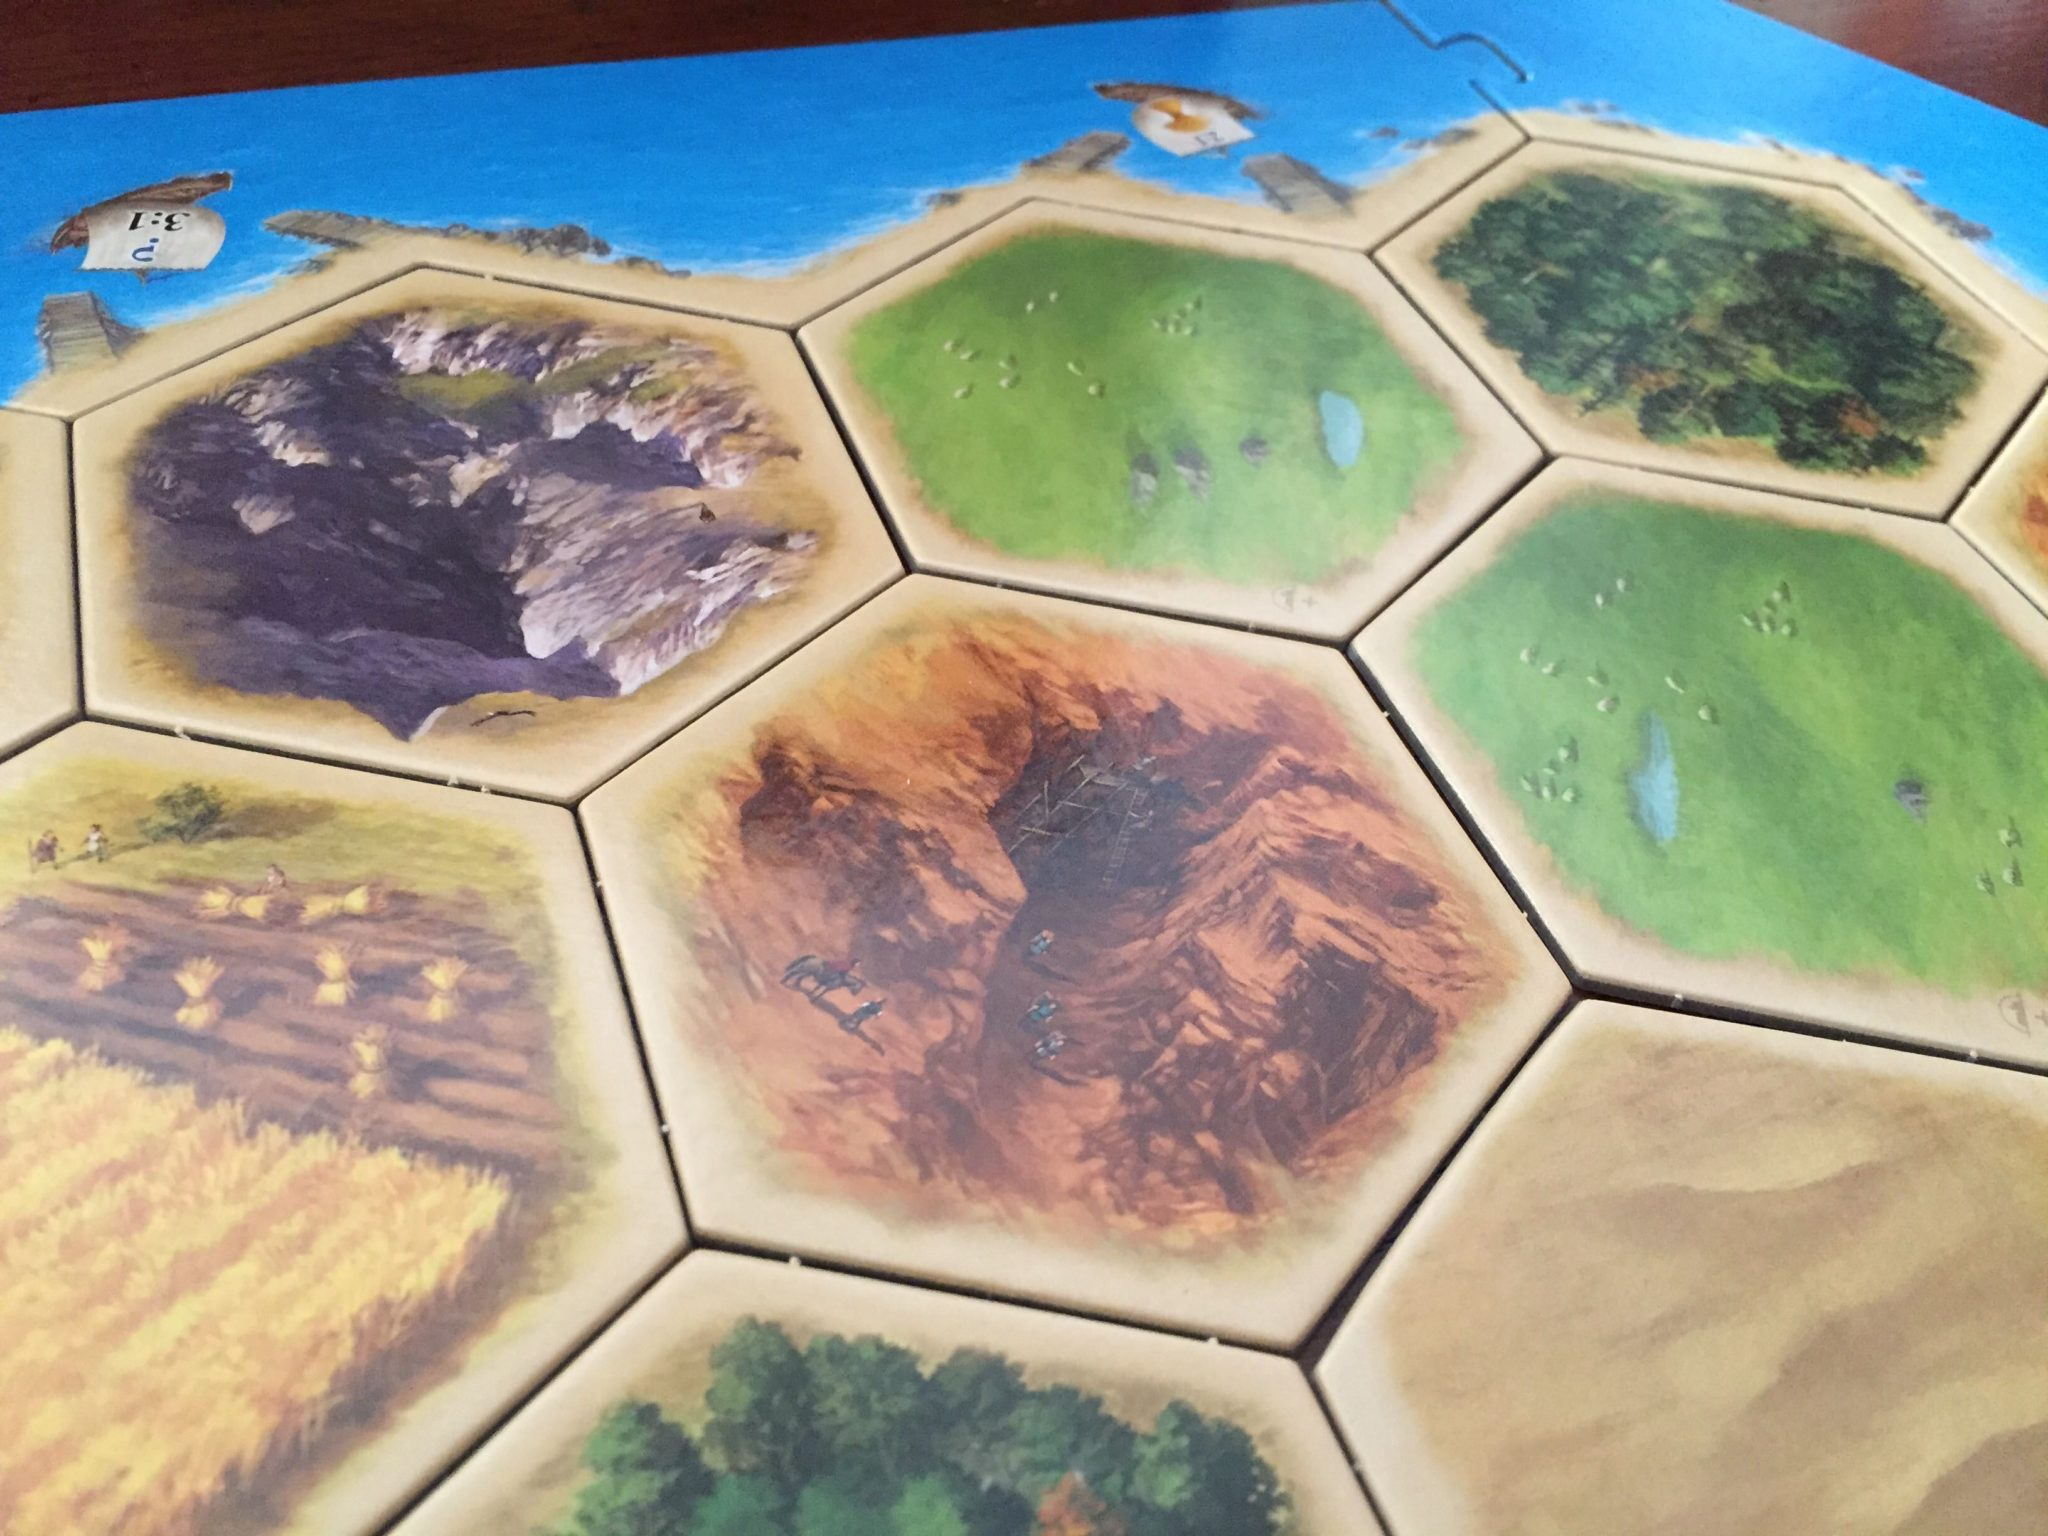 A close-up picture of 6 Catan tiles, one of each type except for two of the sheep-producing fields.